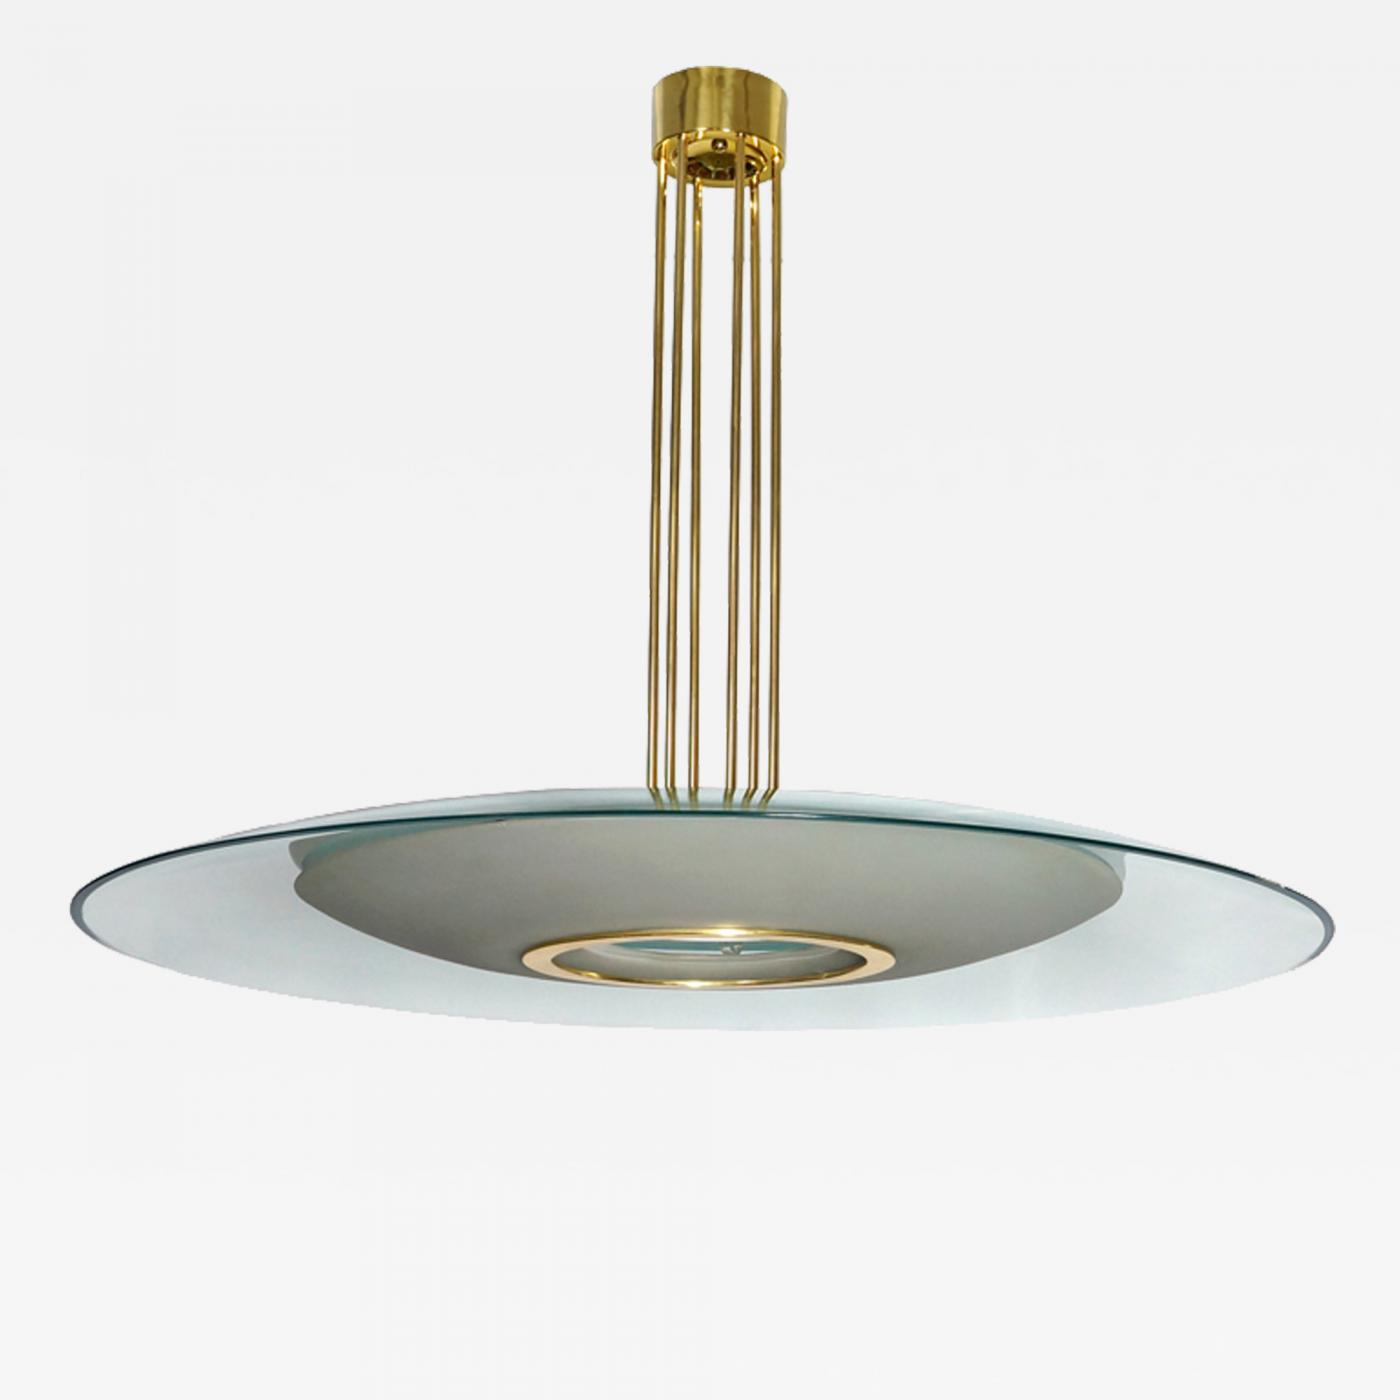 d7489a38808 Max Ingrand - Large Chandelier by Max Ingrand for Fontana Arte